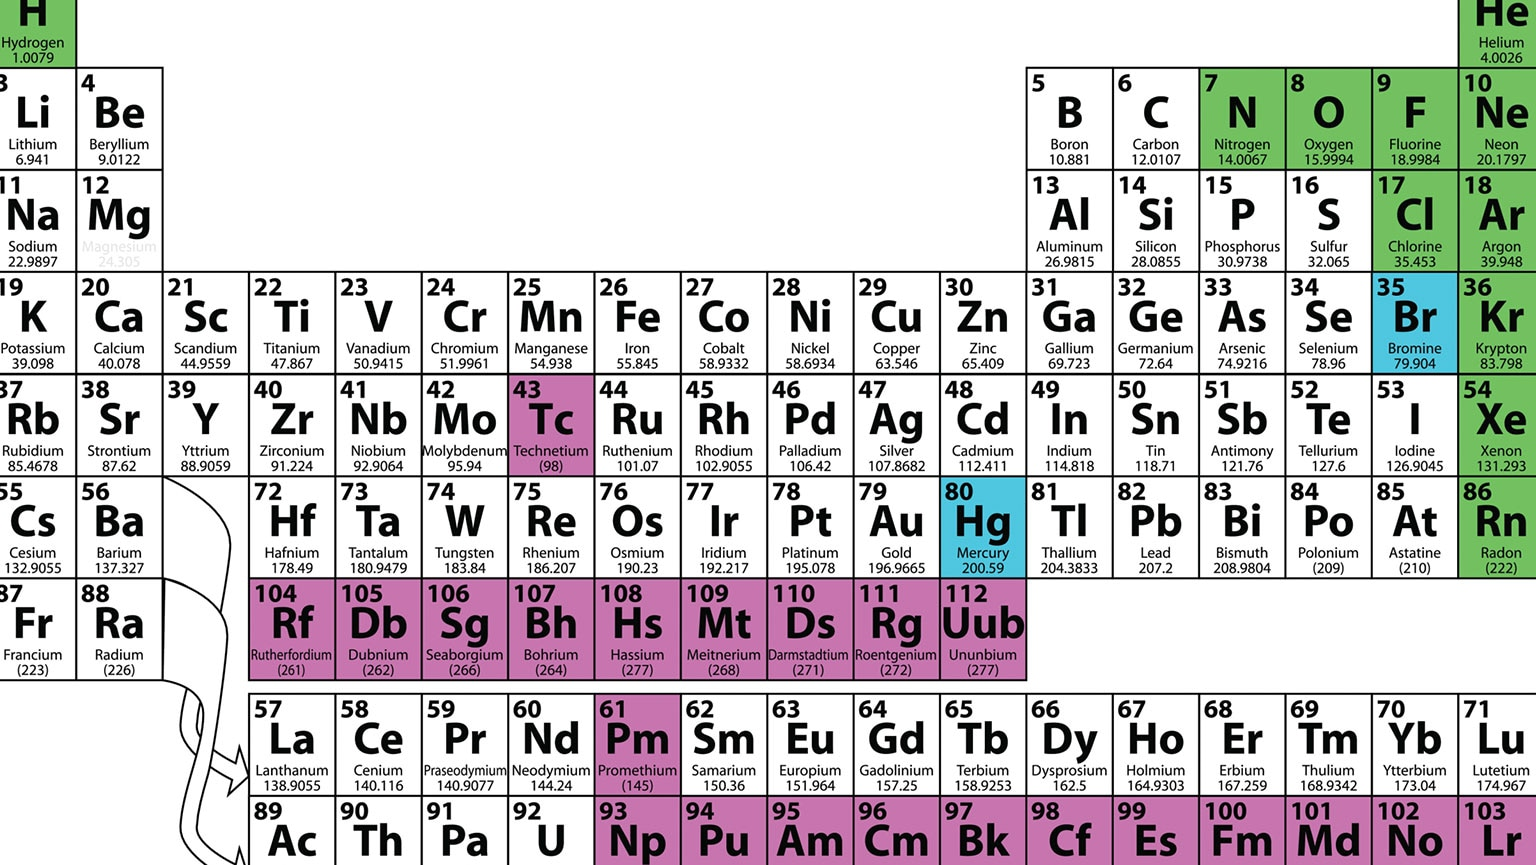 Origins of the Elements—Nucleosynthesis